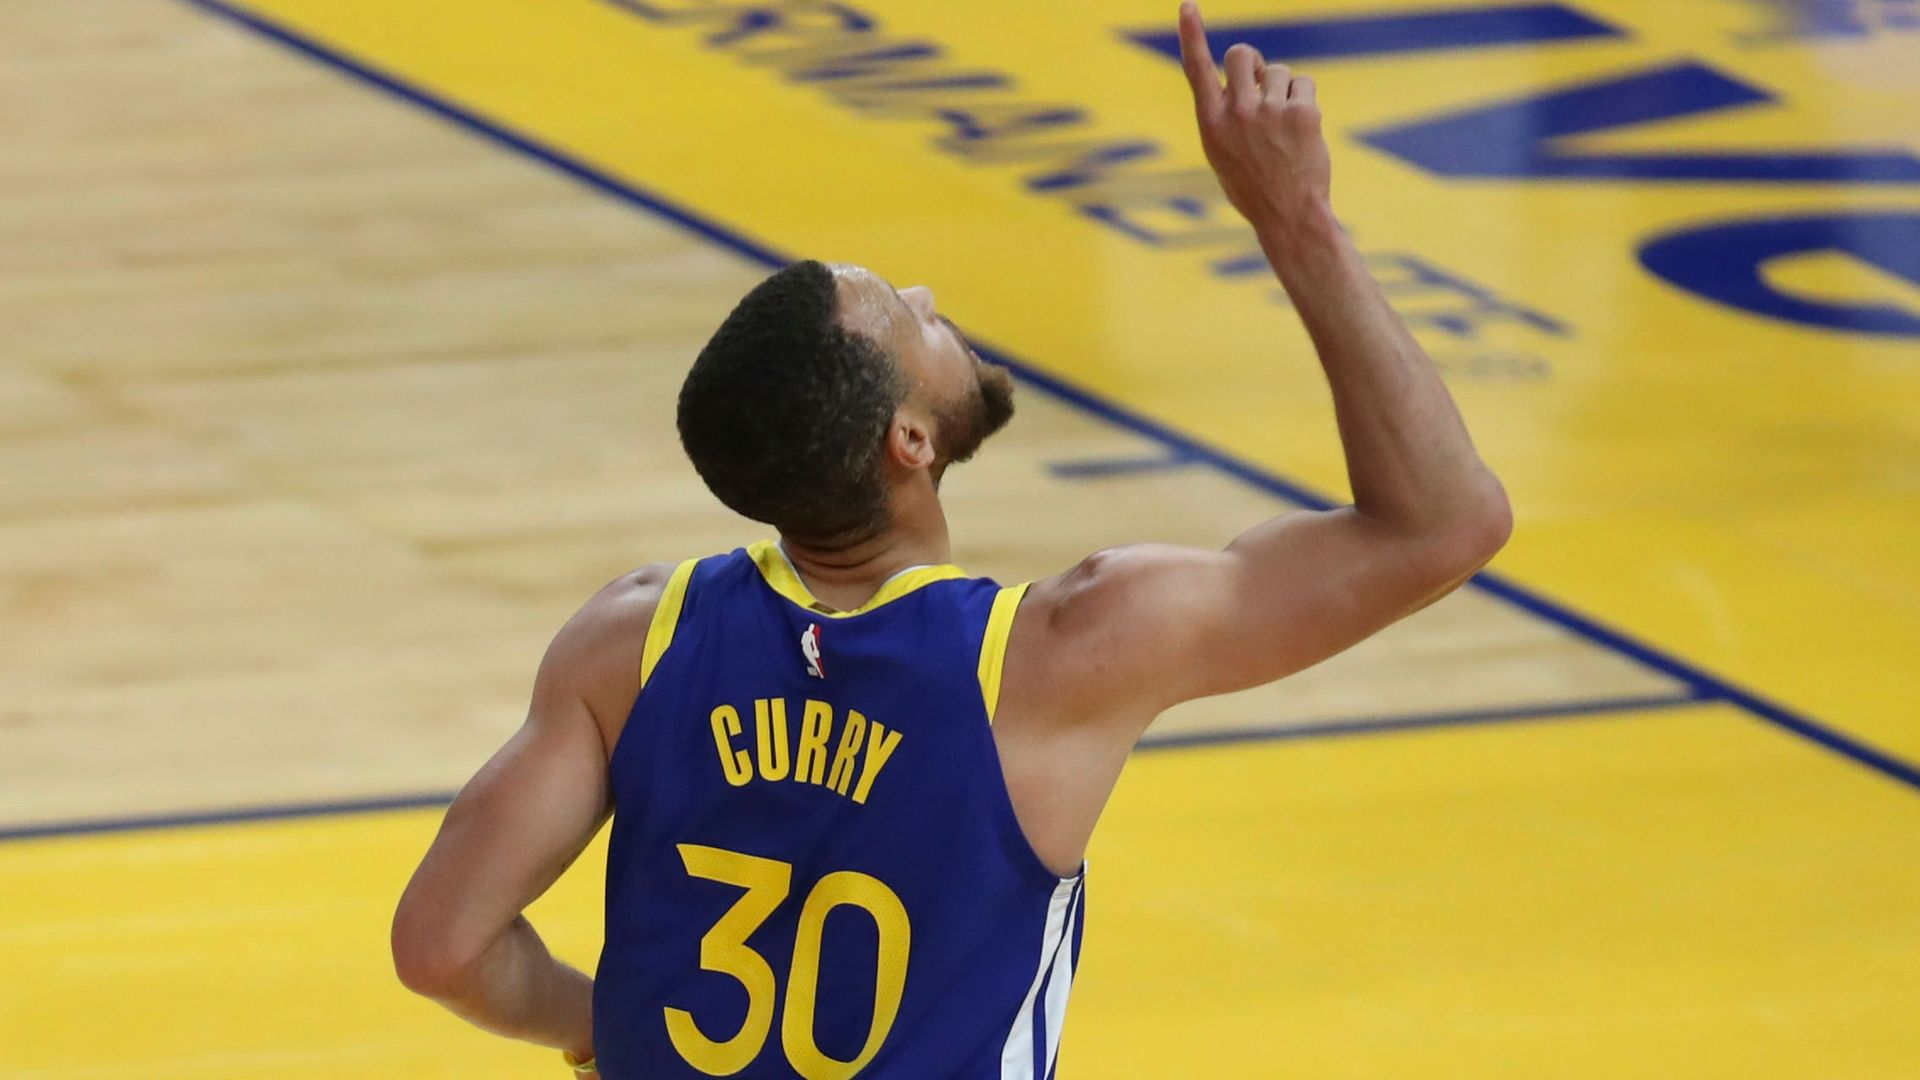 Curry 'spectacular' in 49-point showing